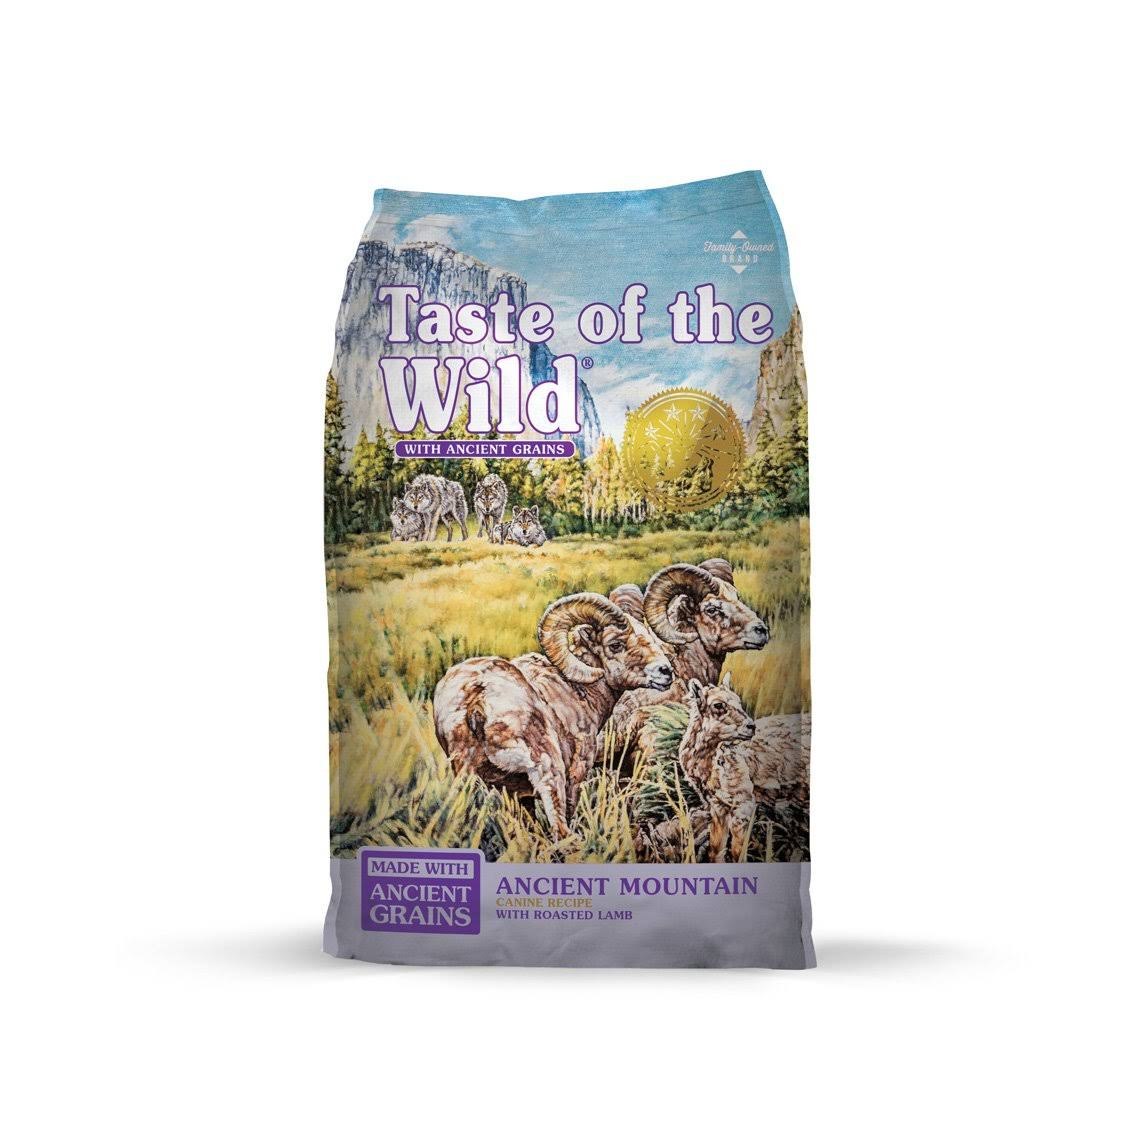 Taste of The Wild Ancient Mountain with Ancient Grains Dry Dog Food, 28 lb